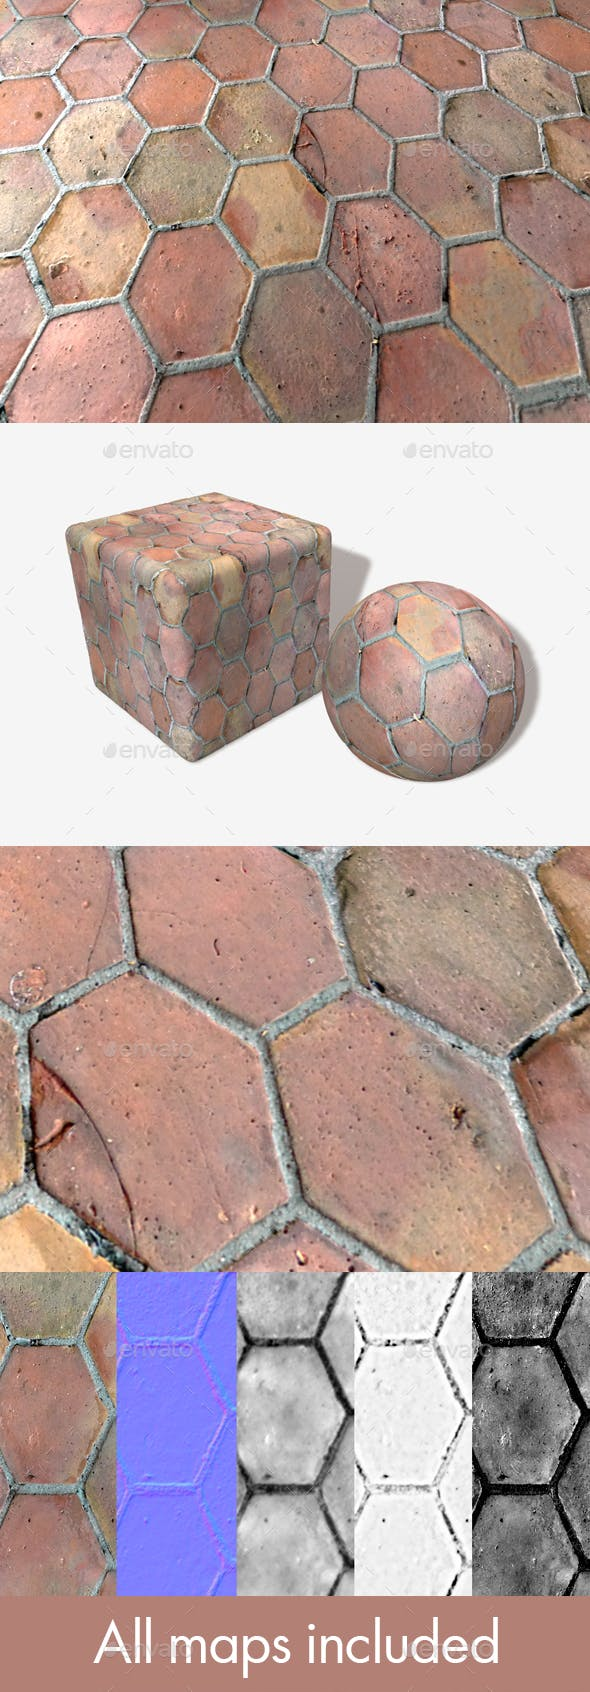 Old Hexagon Floor Tiles Seamless Texture - 3DOcean Item for Sale